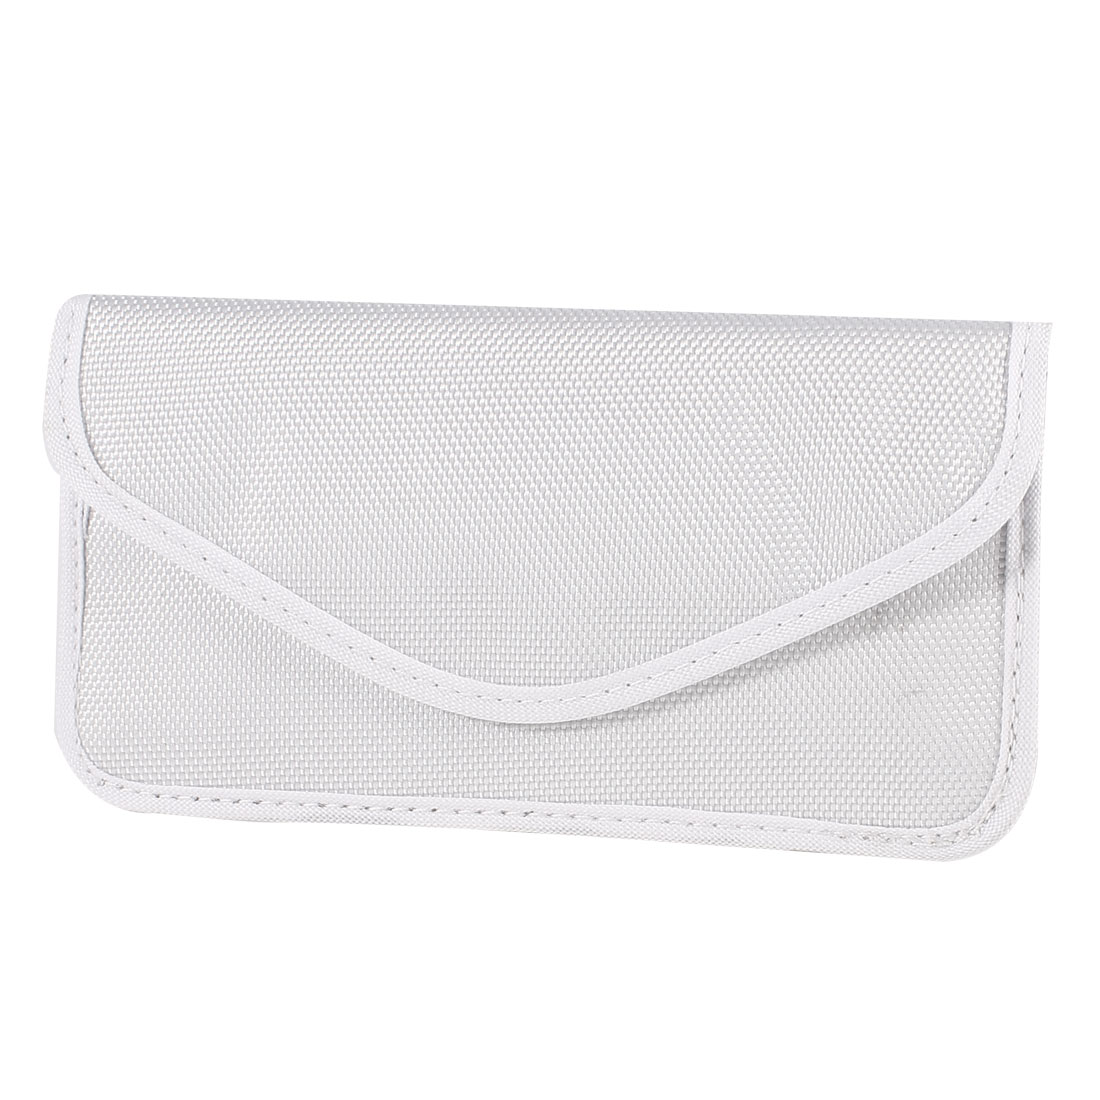 White Cell Phone Anti-static Pouch Case Bag Holder